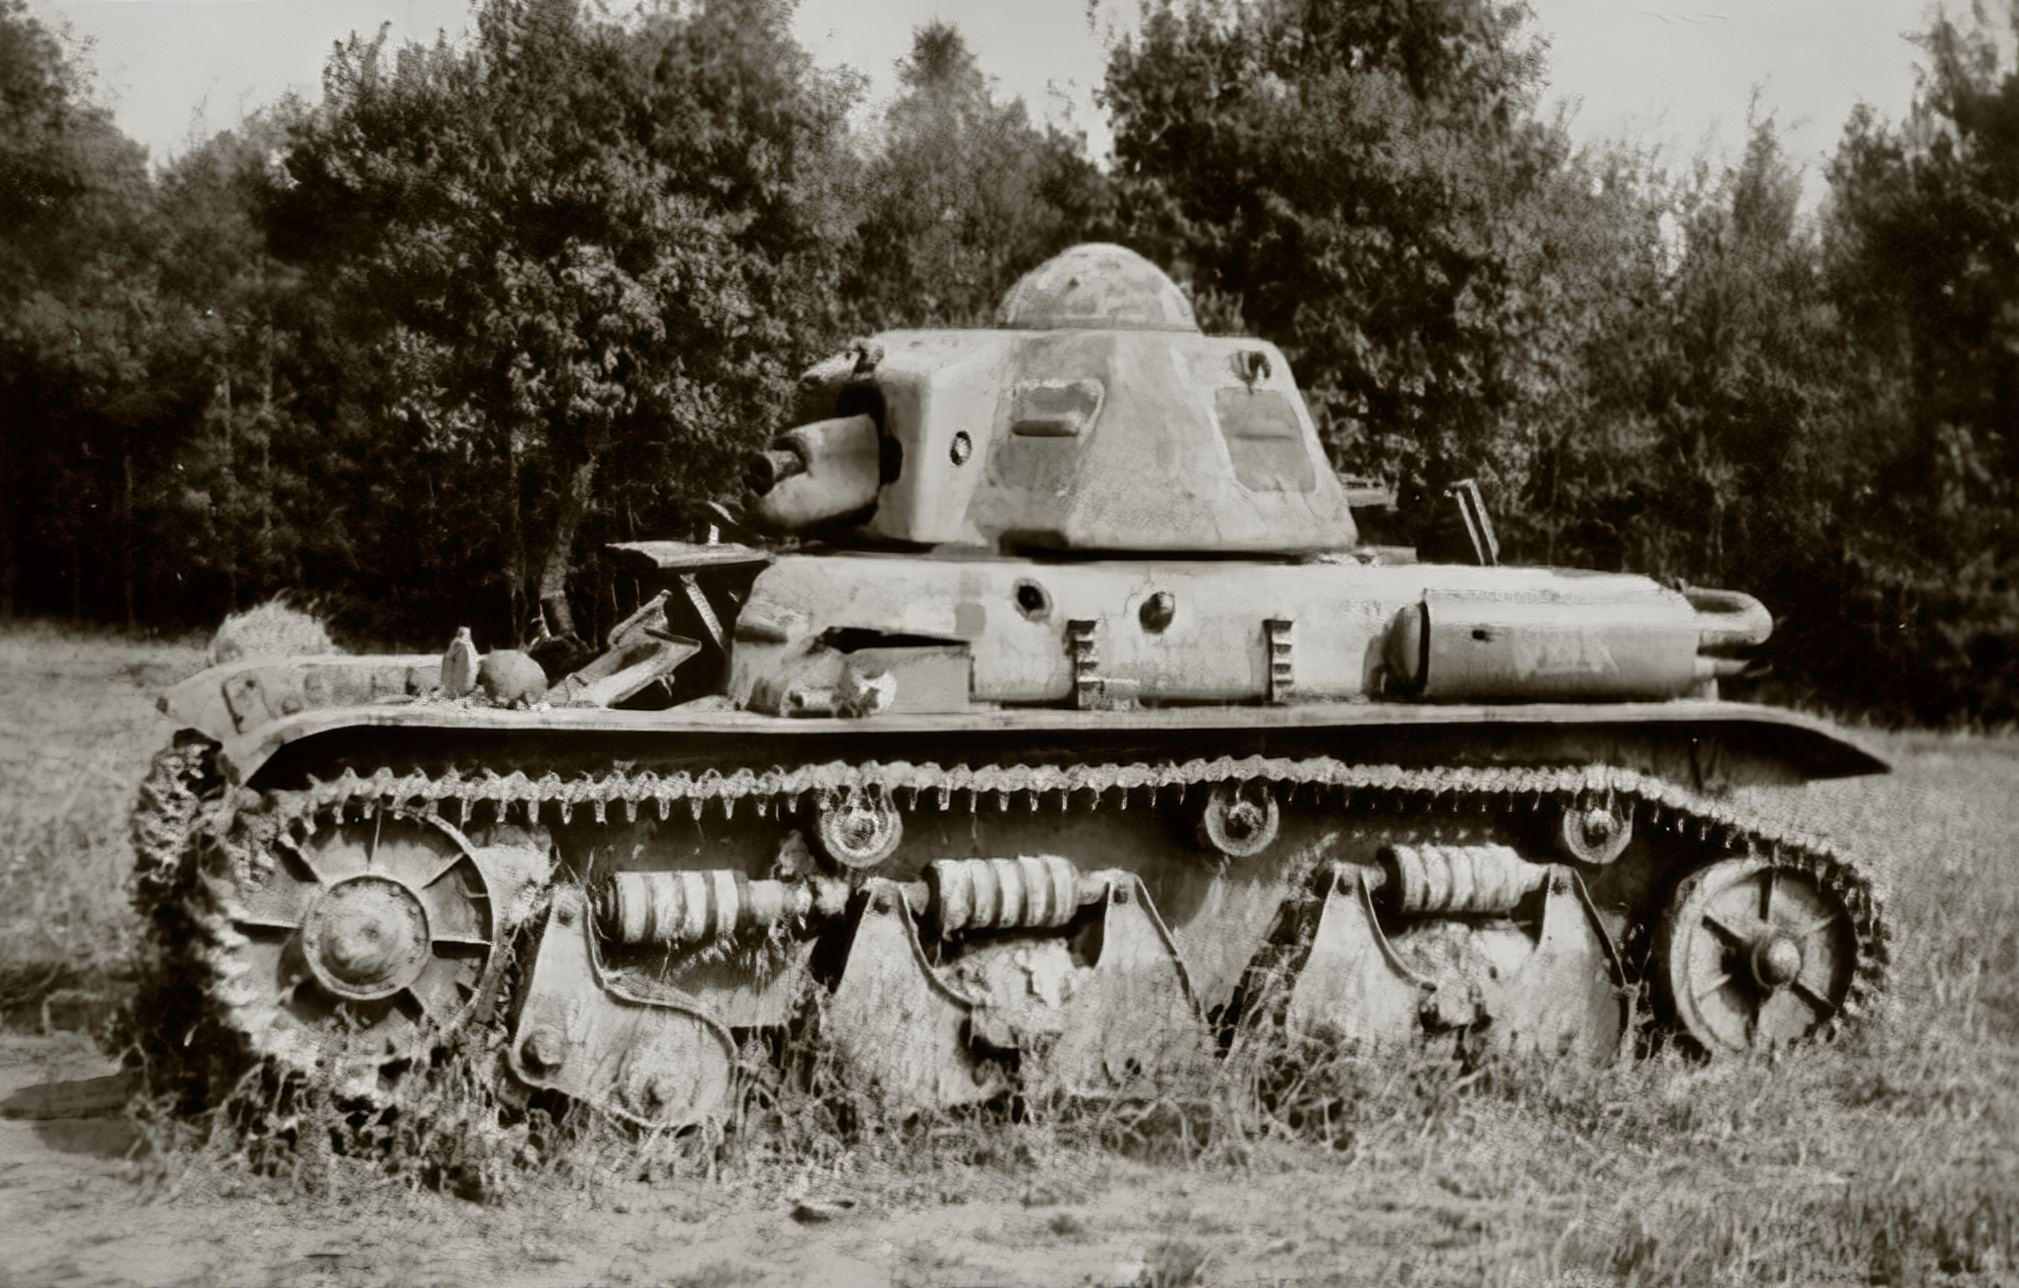 French Army Renault R35 support tank abandoned battle of France 1940 ebay 07